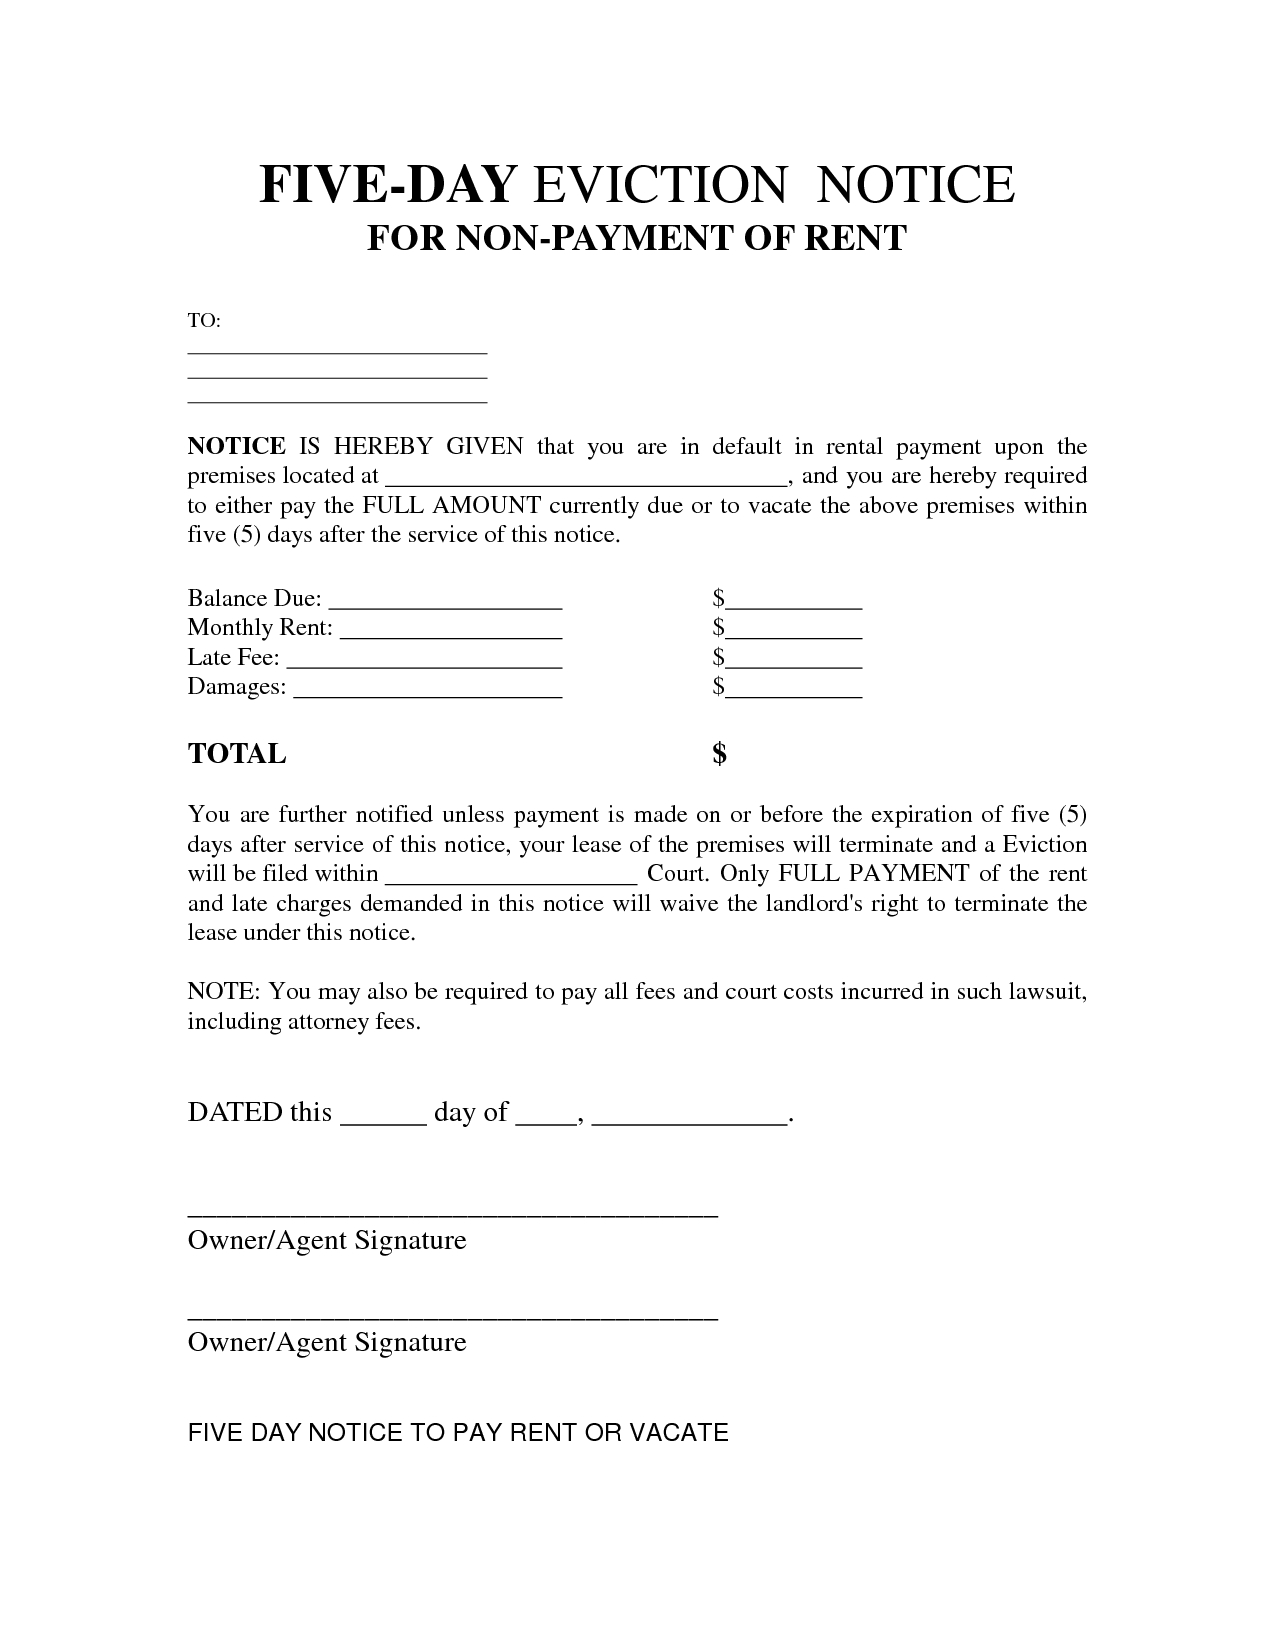 Free Printable Eviction Notice Letter | Bagnas - 5 Day Eviction - Free Printable Eviction Notice